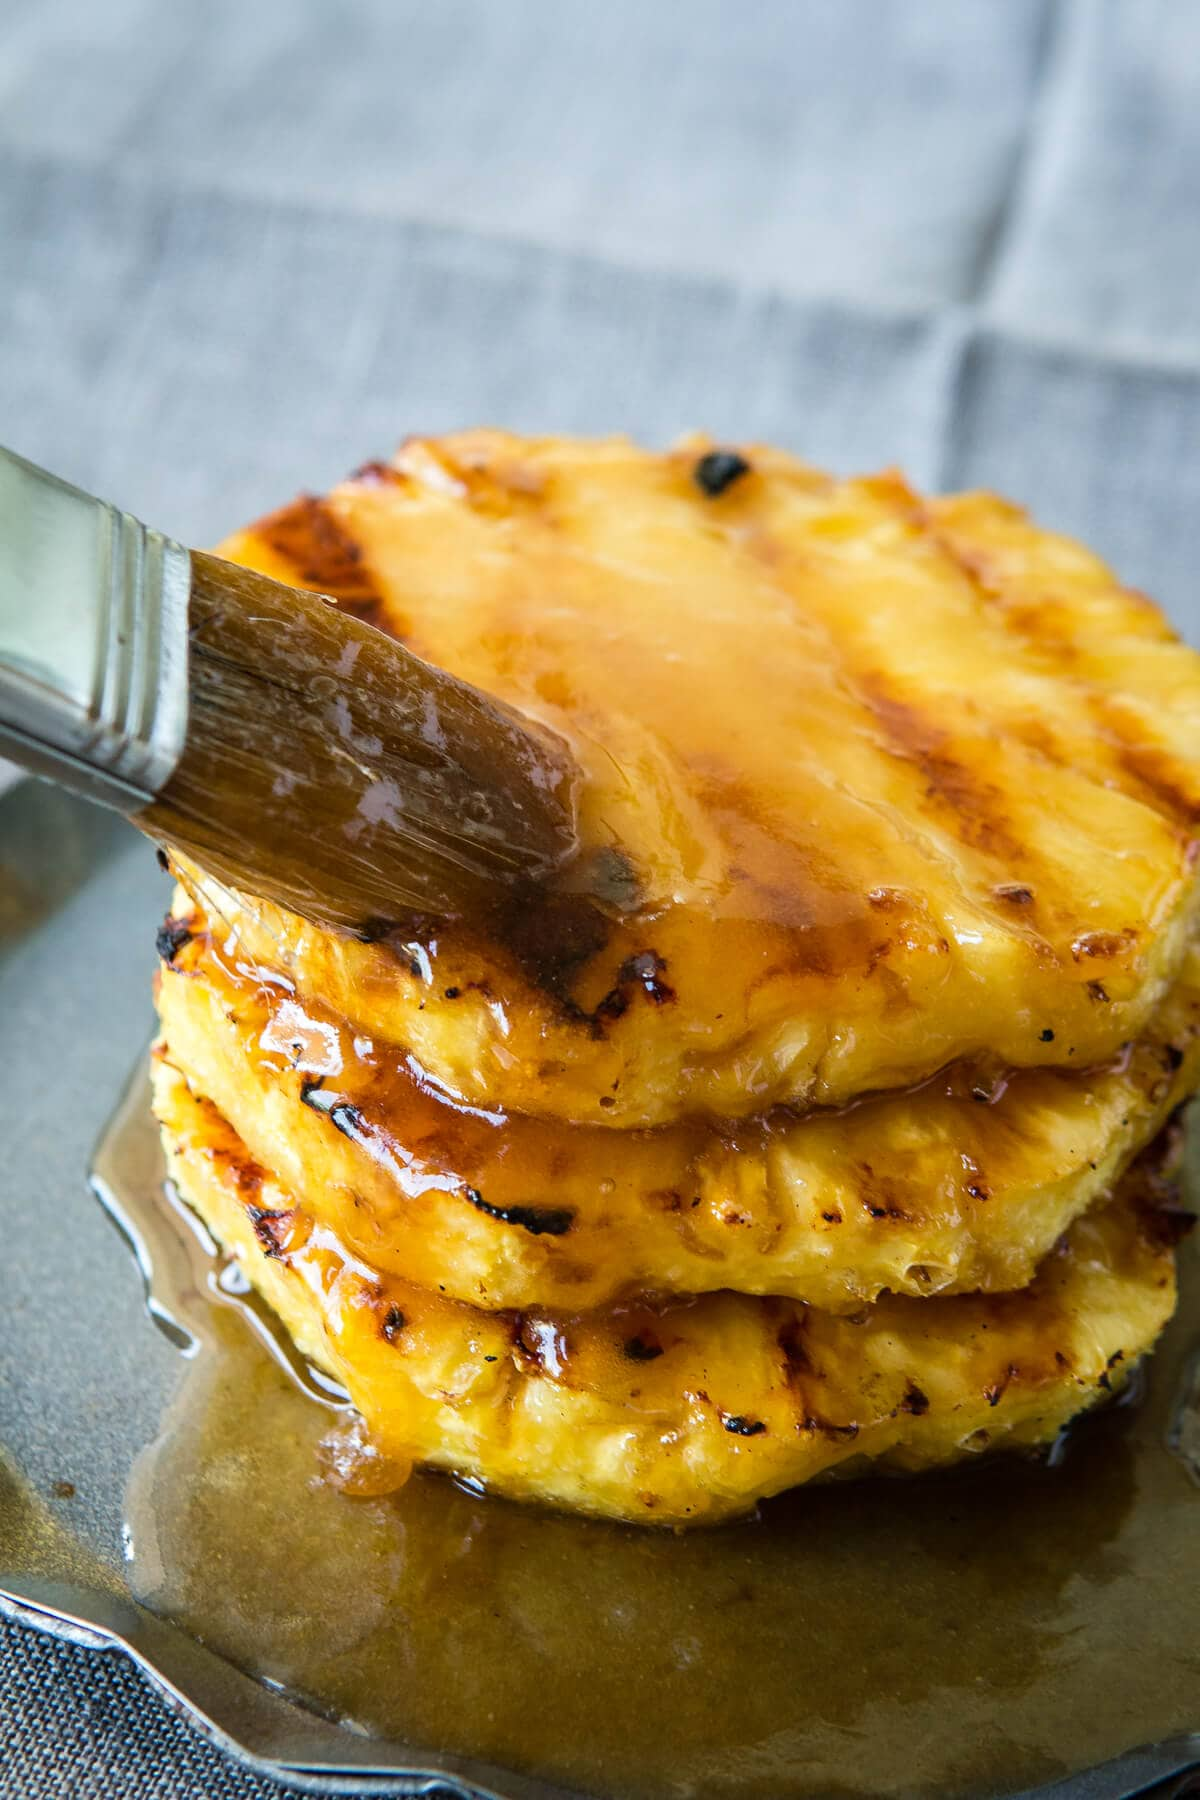 Juicy, sweet pineapple with a brown sugar butter sauce that's grilled to perfection. Looking for a healthier dessert? Try our brown sugar grilled pineapple!